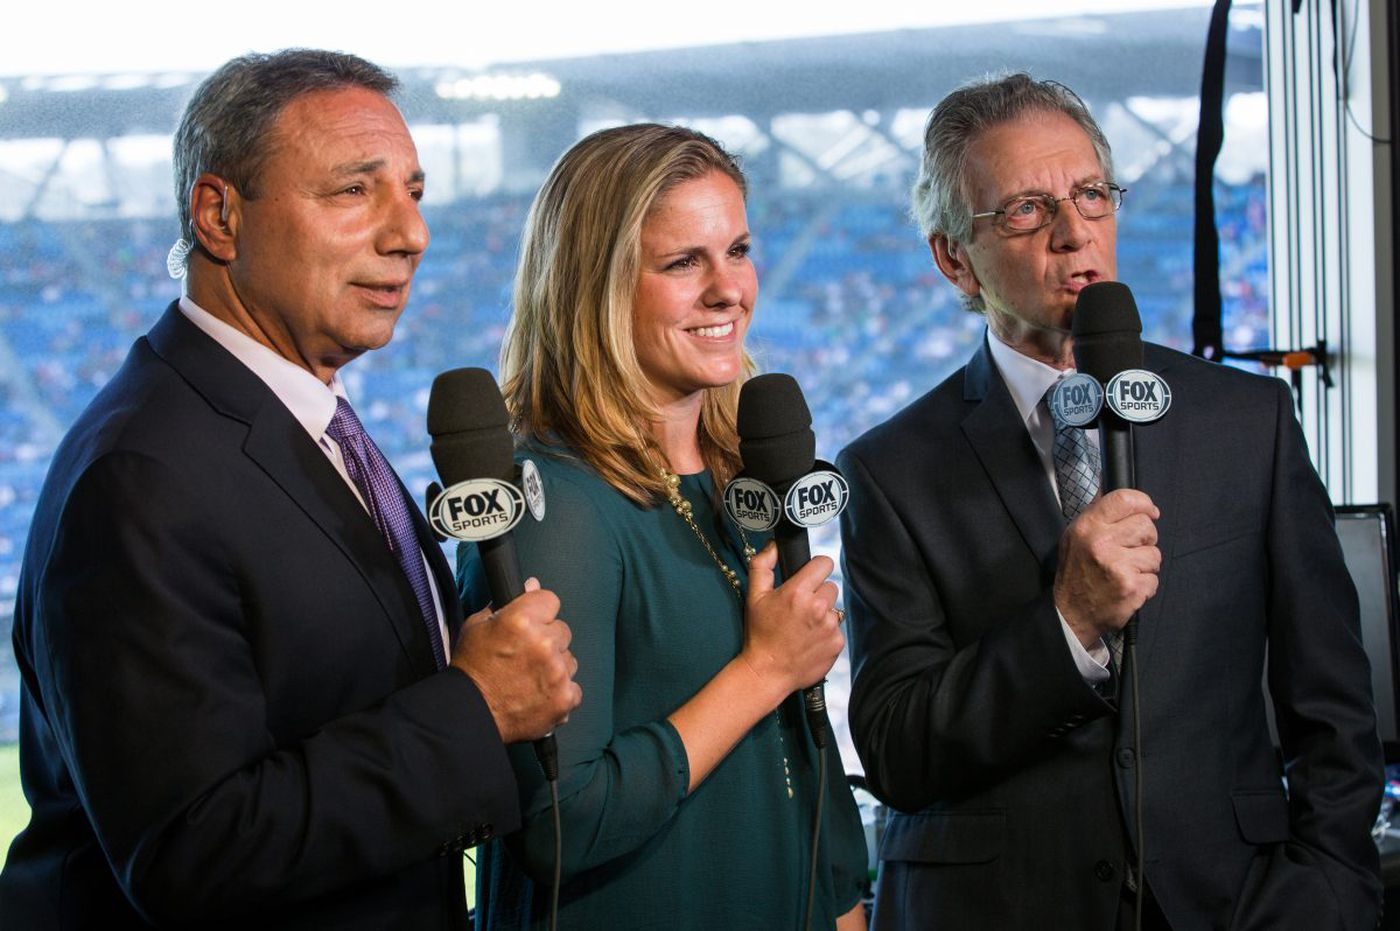 Union's JP Dellacamera returns to World Cup as Fox play-by-play announcer